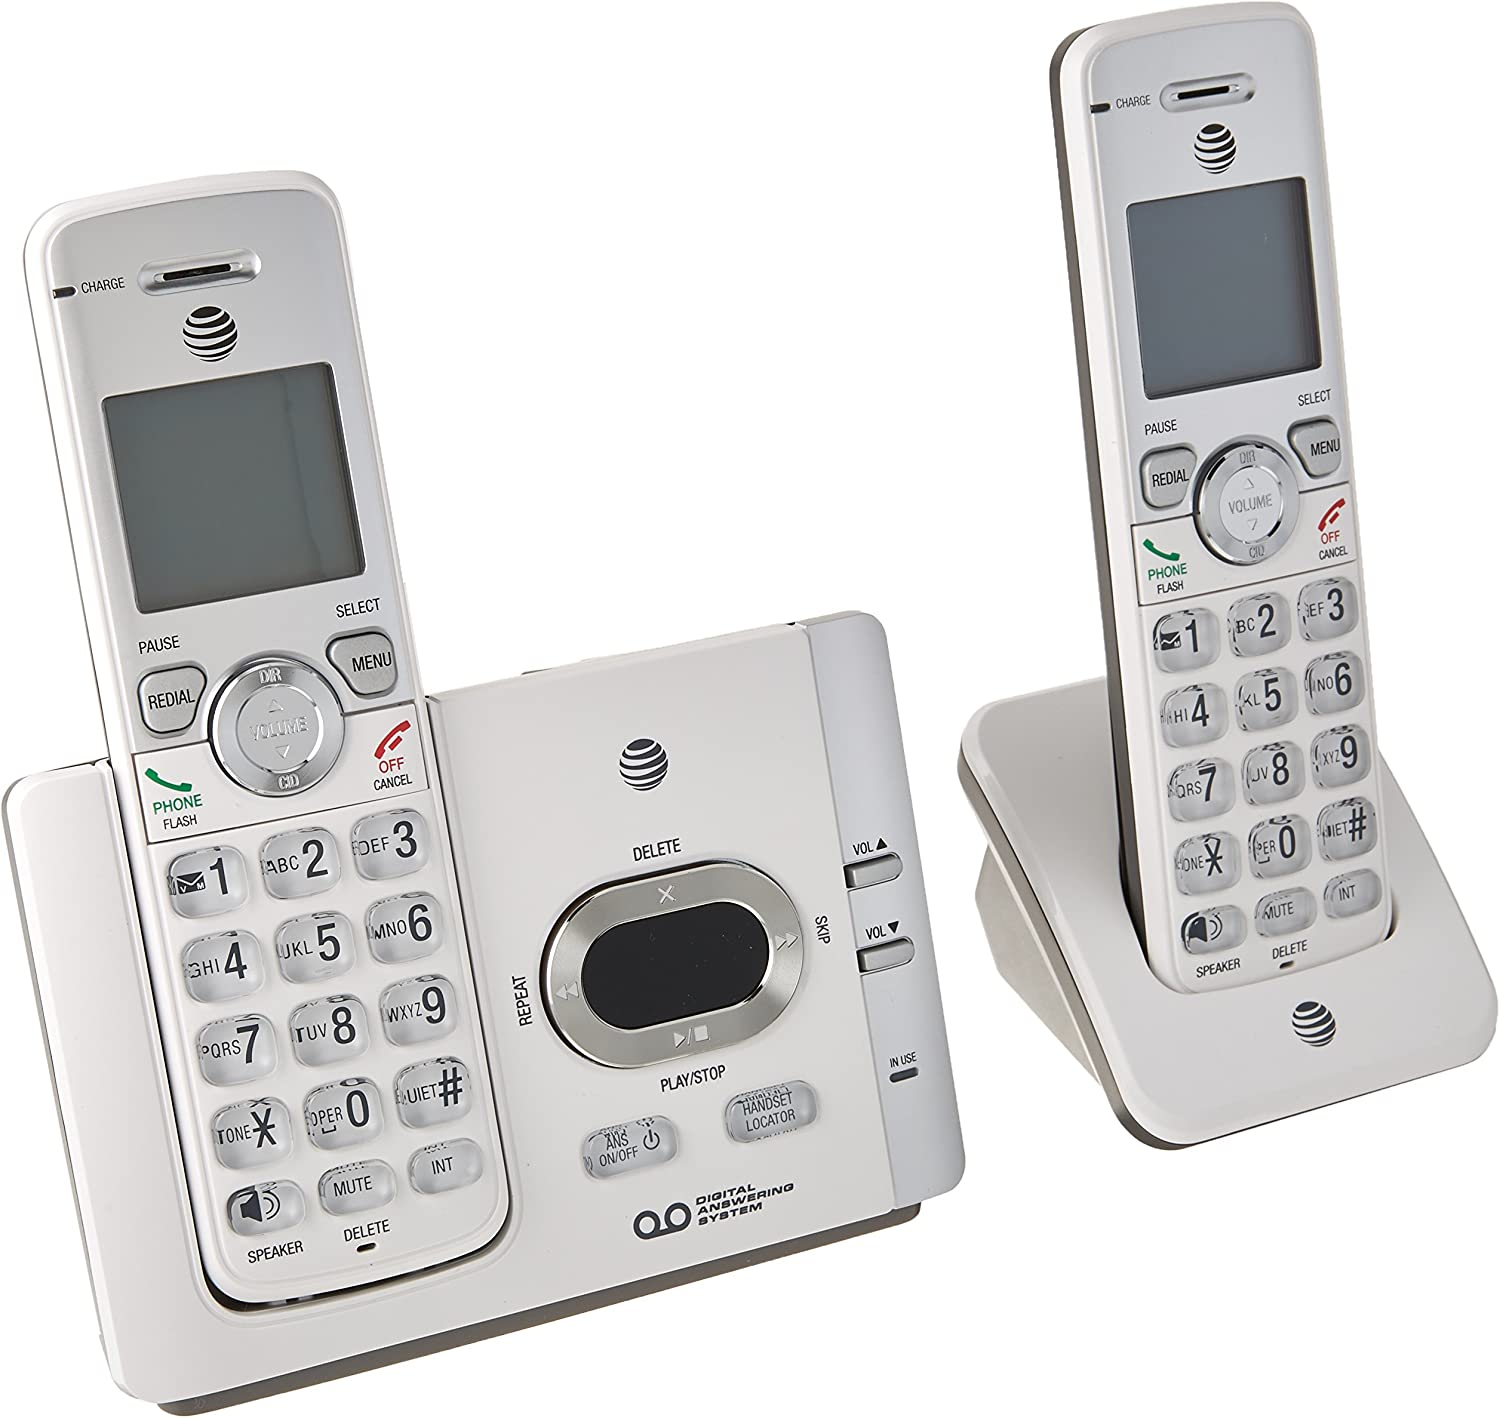 AT&T EL52215 Dect 6.0 Answering System with Caller ID/Call Waiting Landline Telephone Accessory,Gray